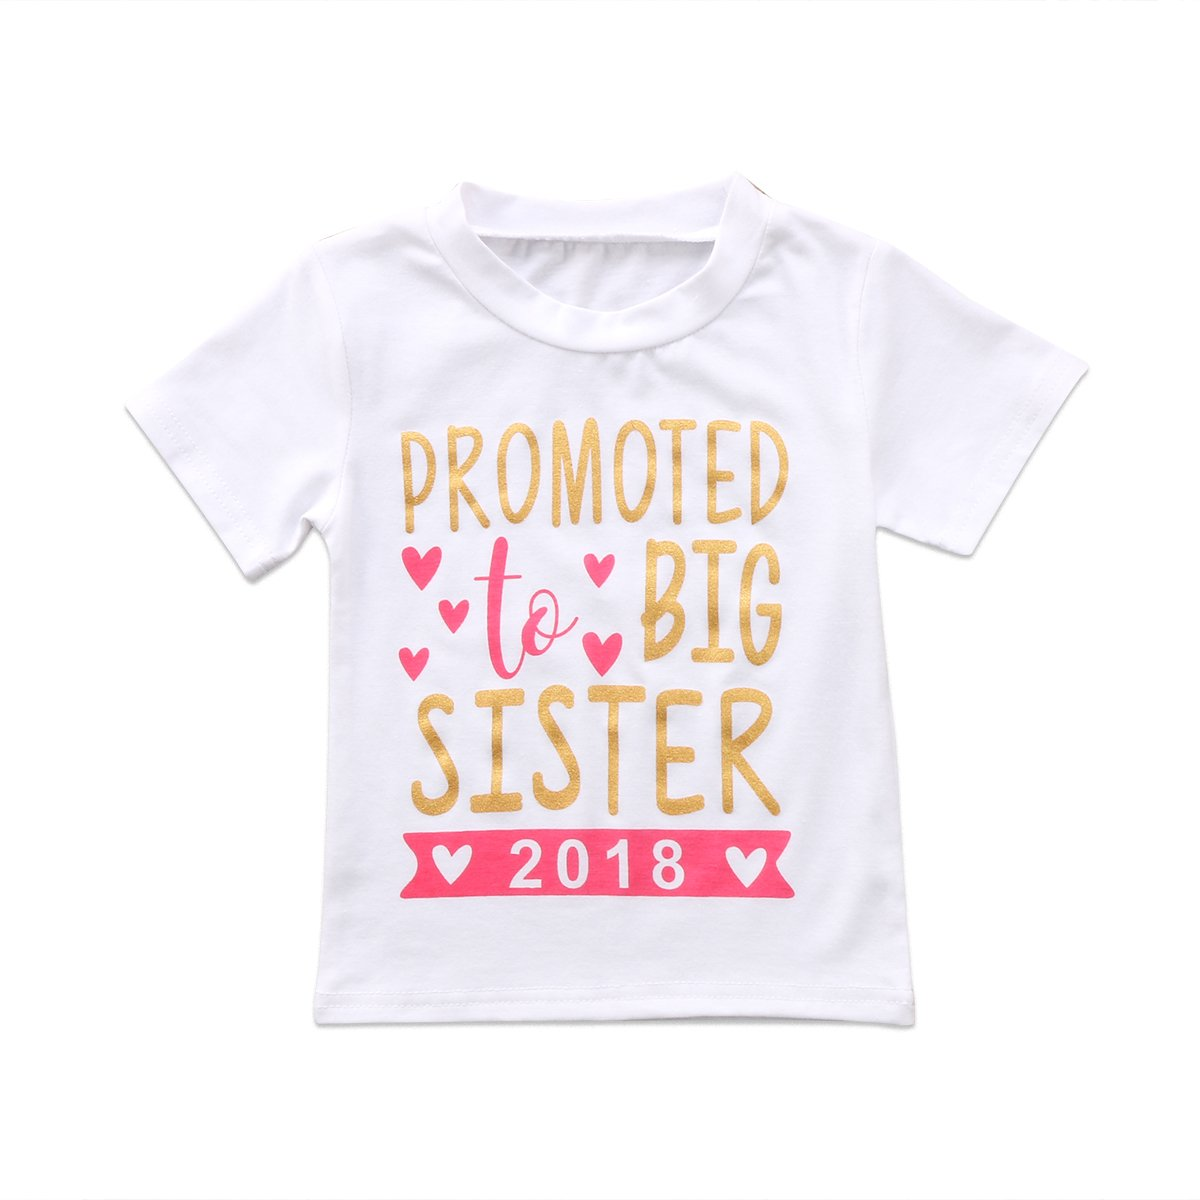 2018 Baby Girl Clothes Outfit Big Sister Letter Print T-shirt Top Blouse Shirts (White, 3-4 Years)